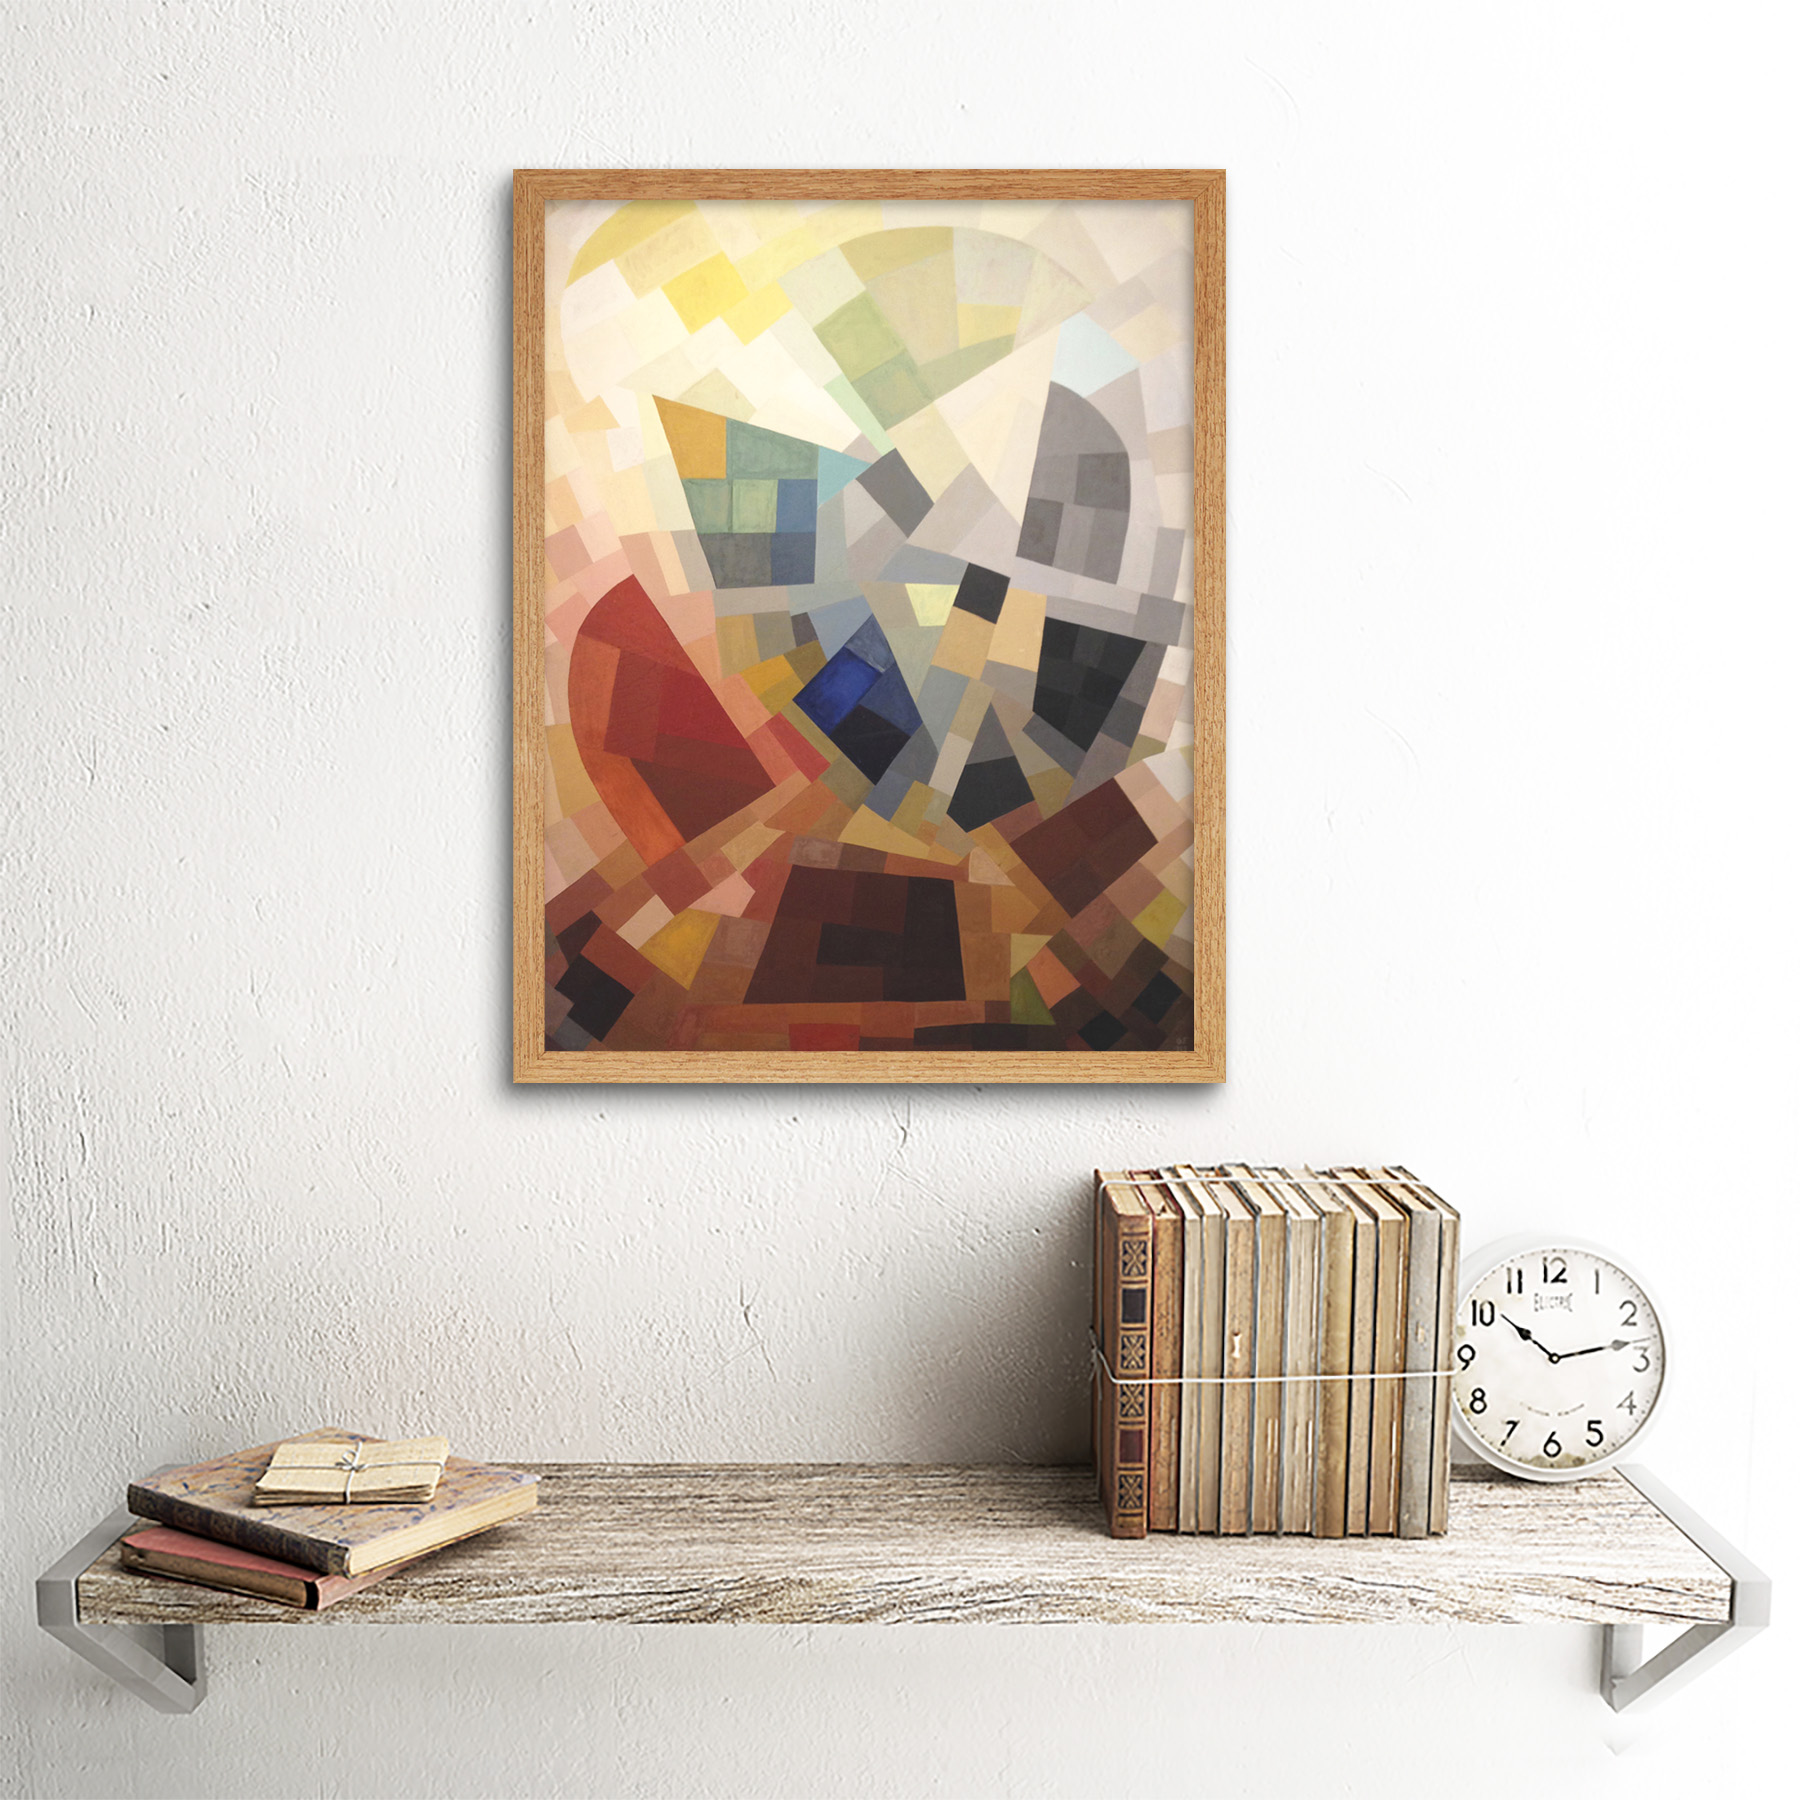 Freundlich-Abstract-Composition-Painting-Art-Print-Framed-12x16 thumbnail 13